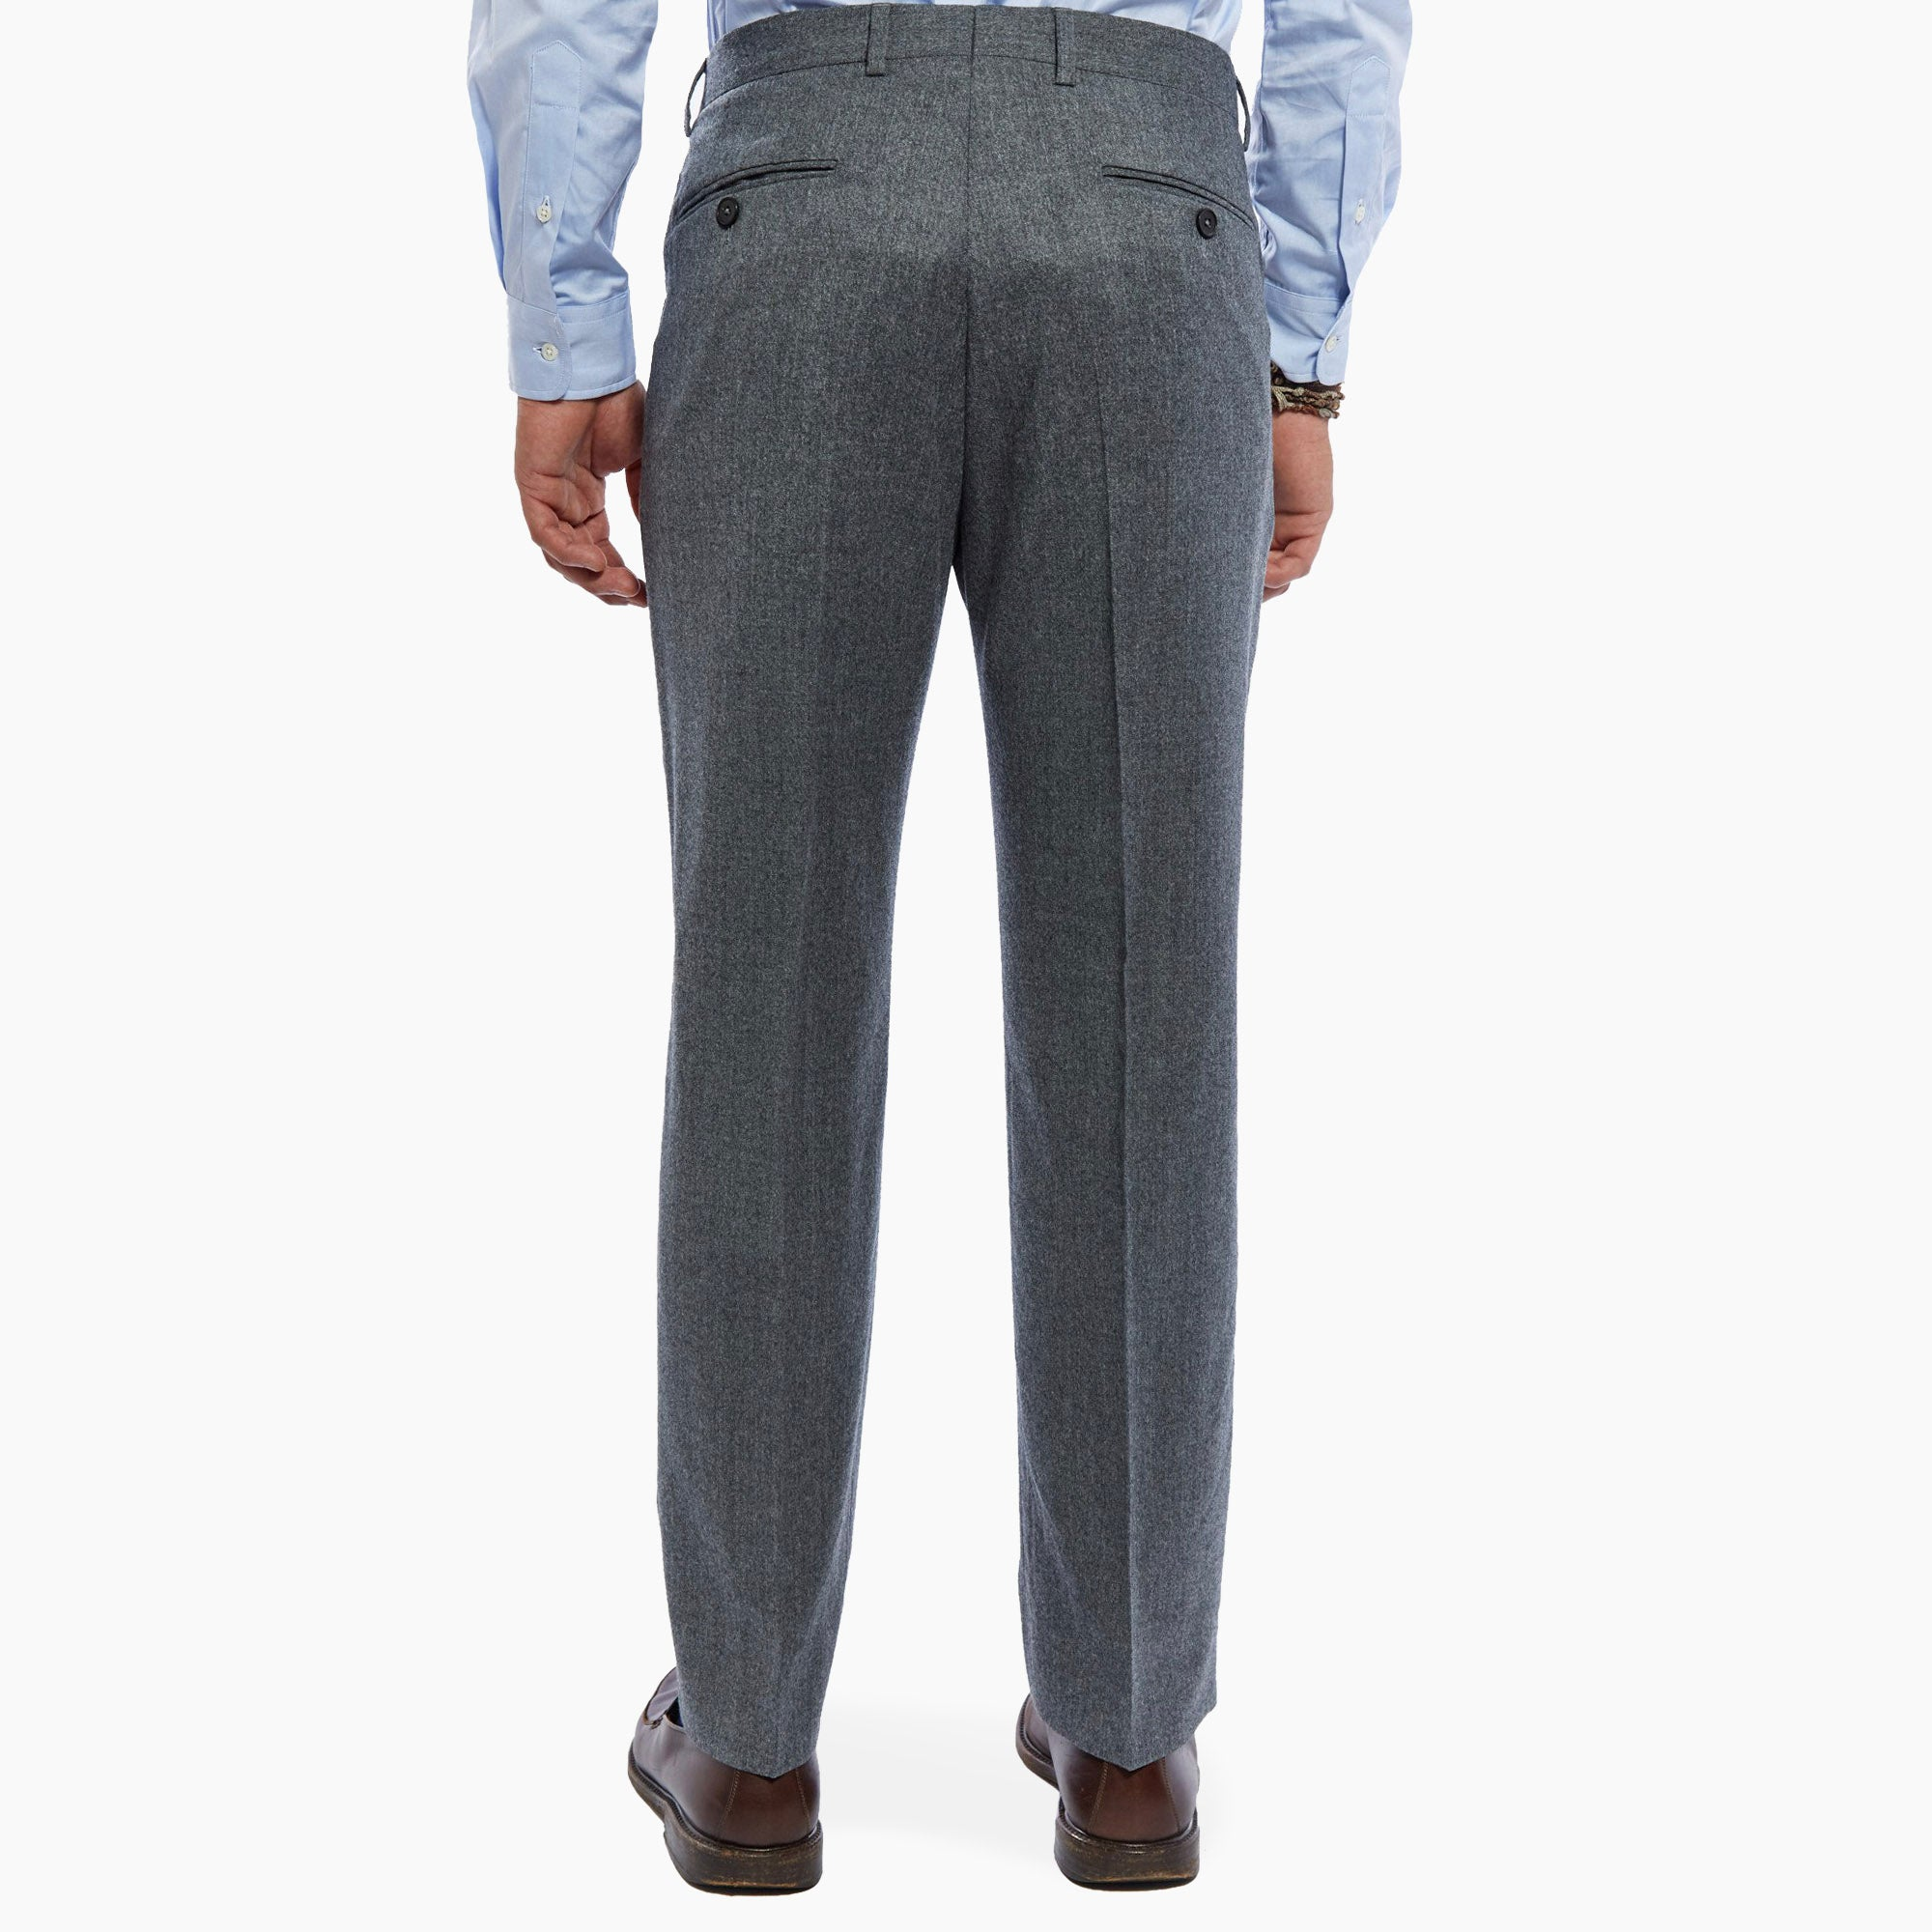 Essex Dress Pants - Grey Flannel